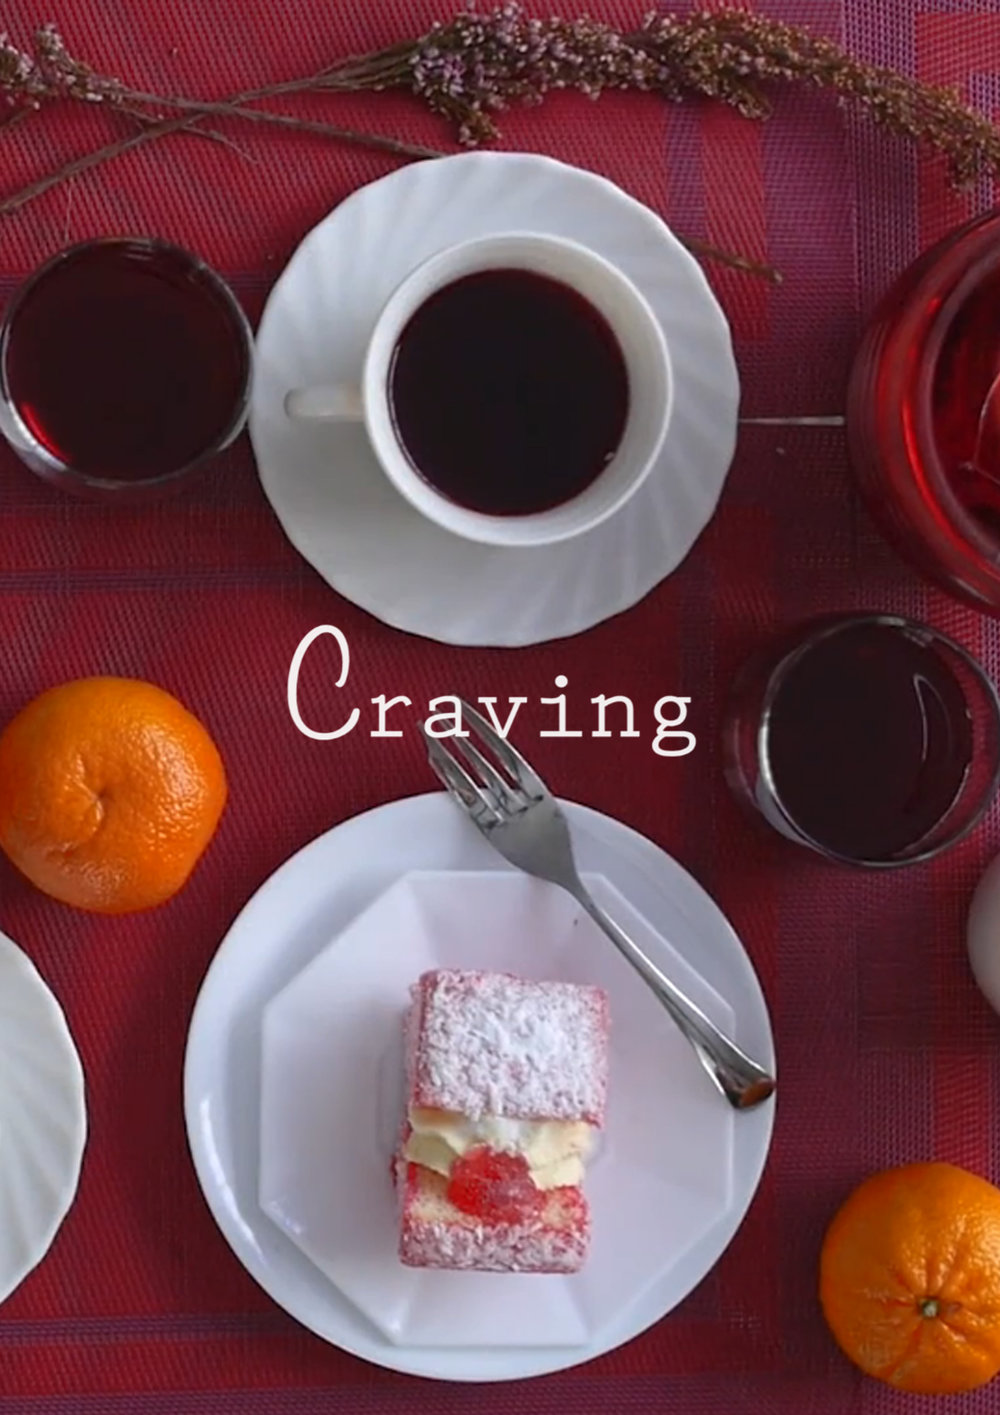 Craving (2015)    Director:  Christienne Jauregui